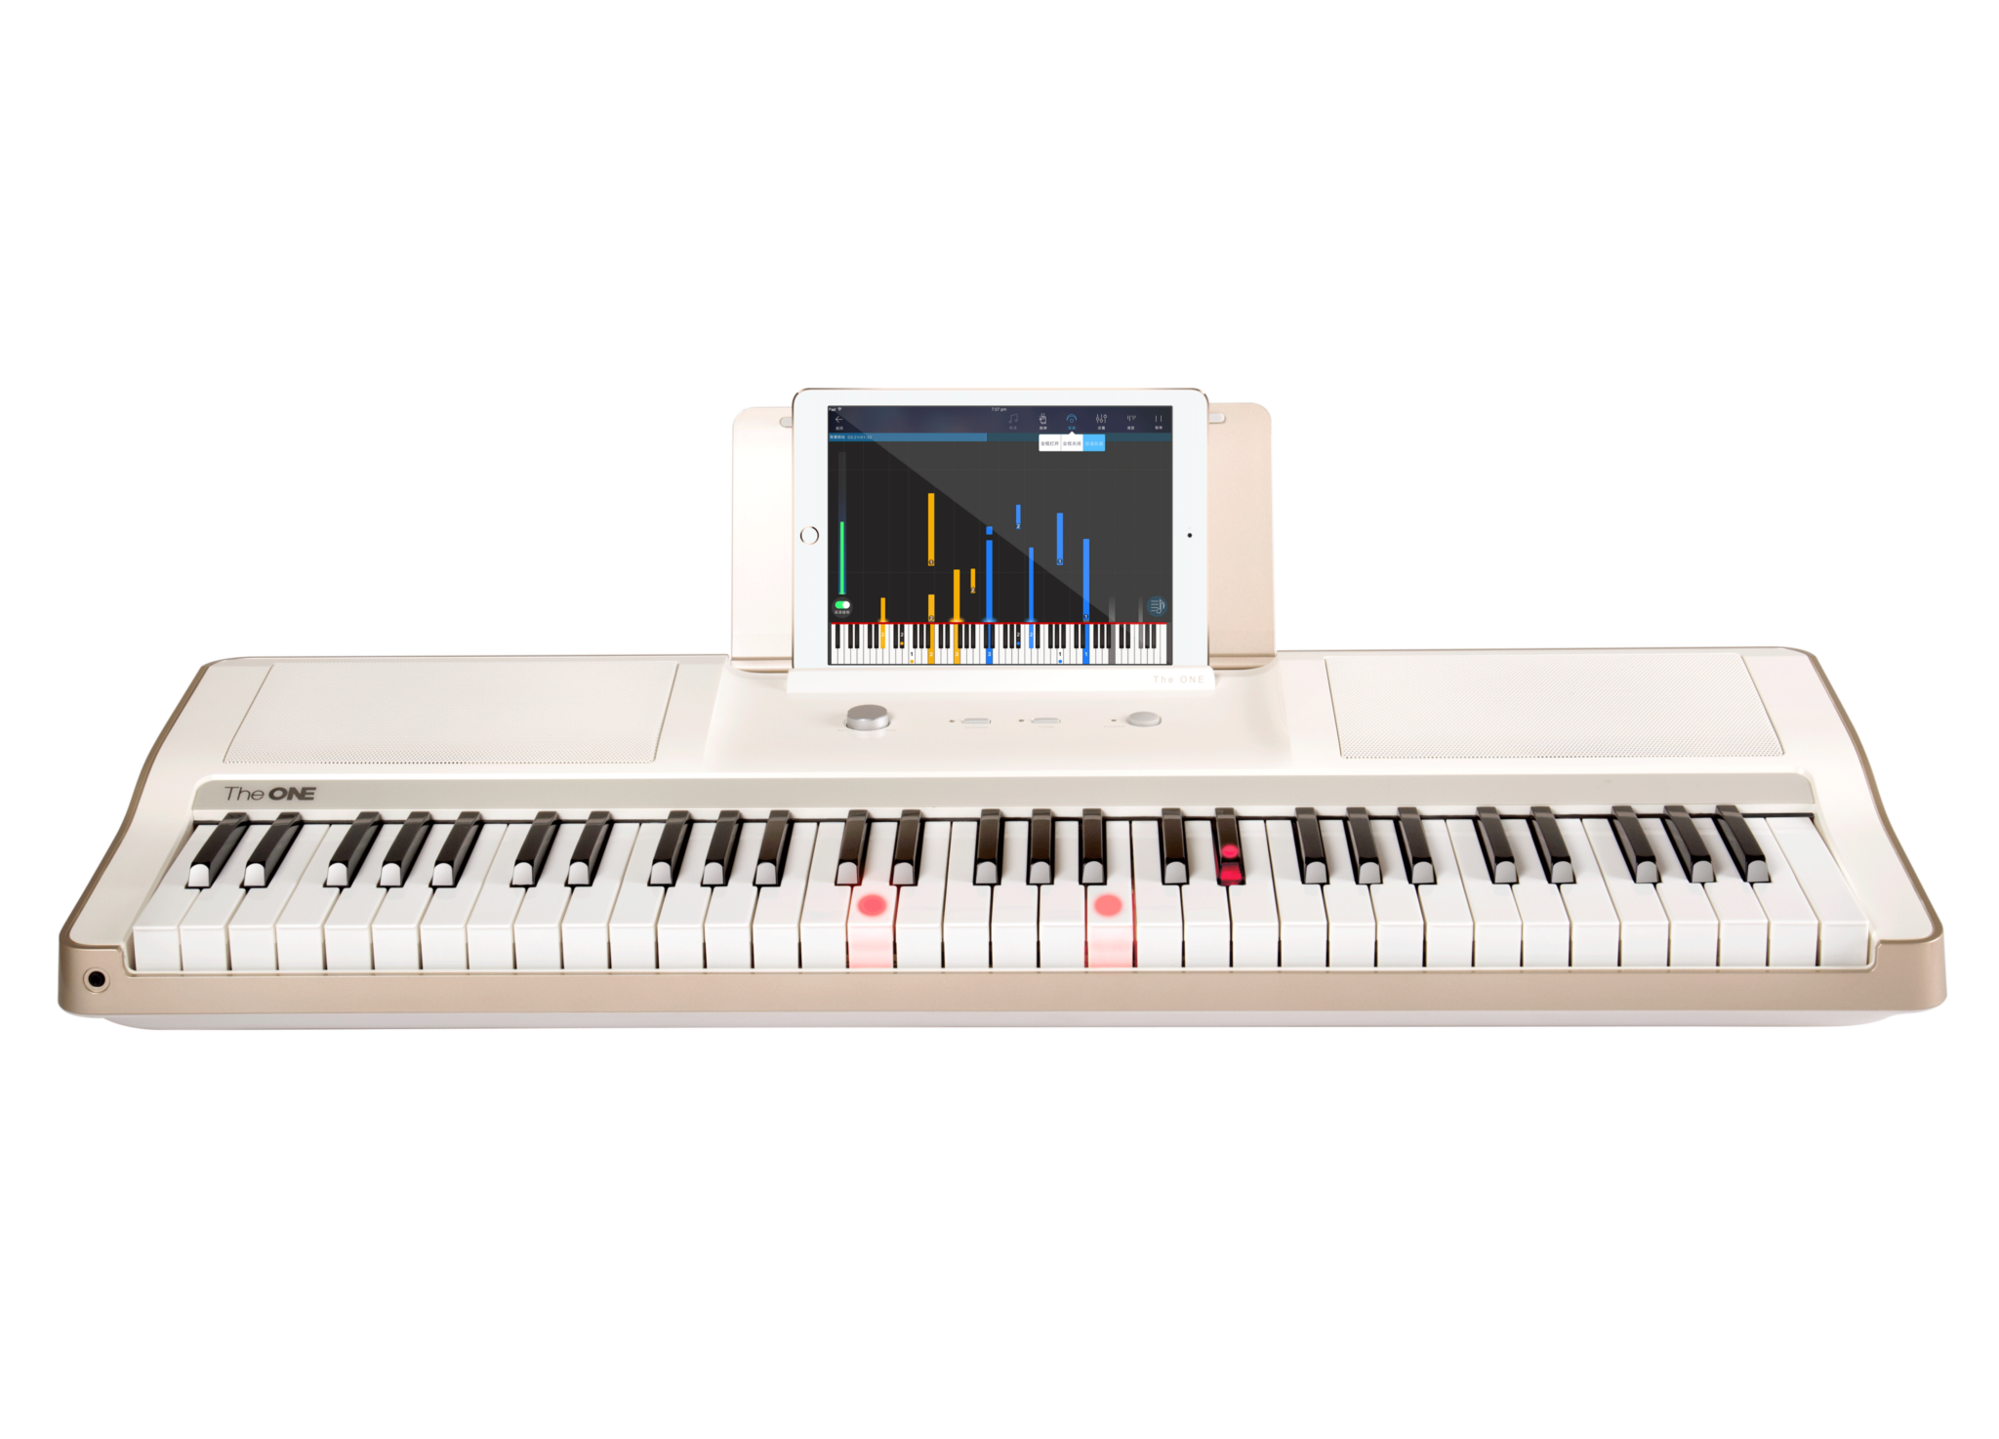 Piano clipart midi keyboard. The one smart light